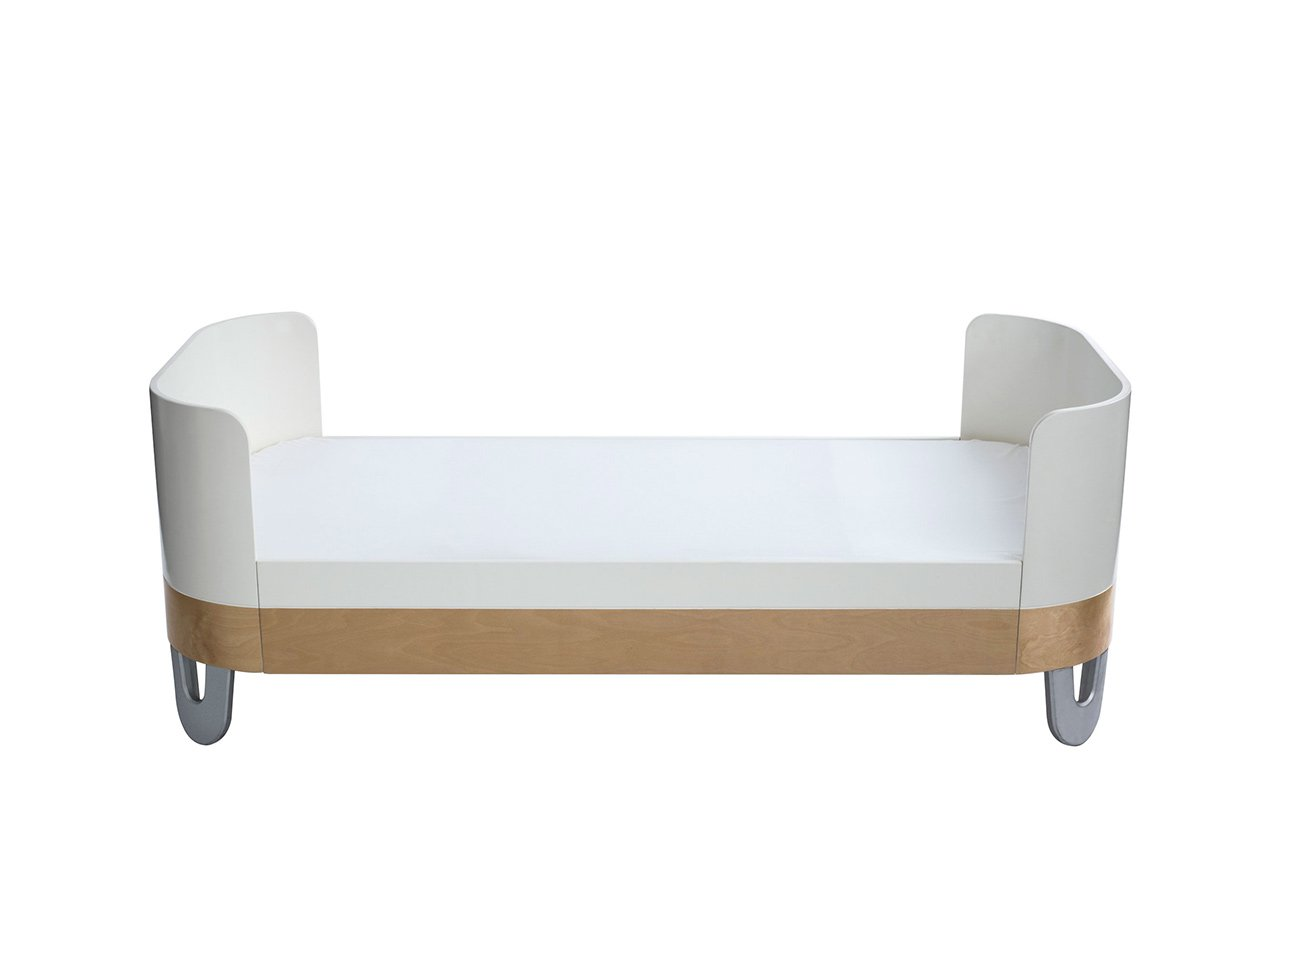 Serena Junior Bed Extension - White Natural